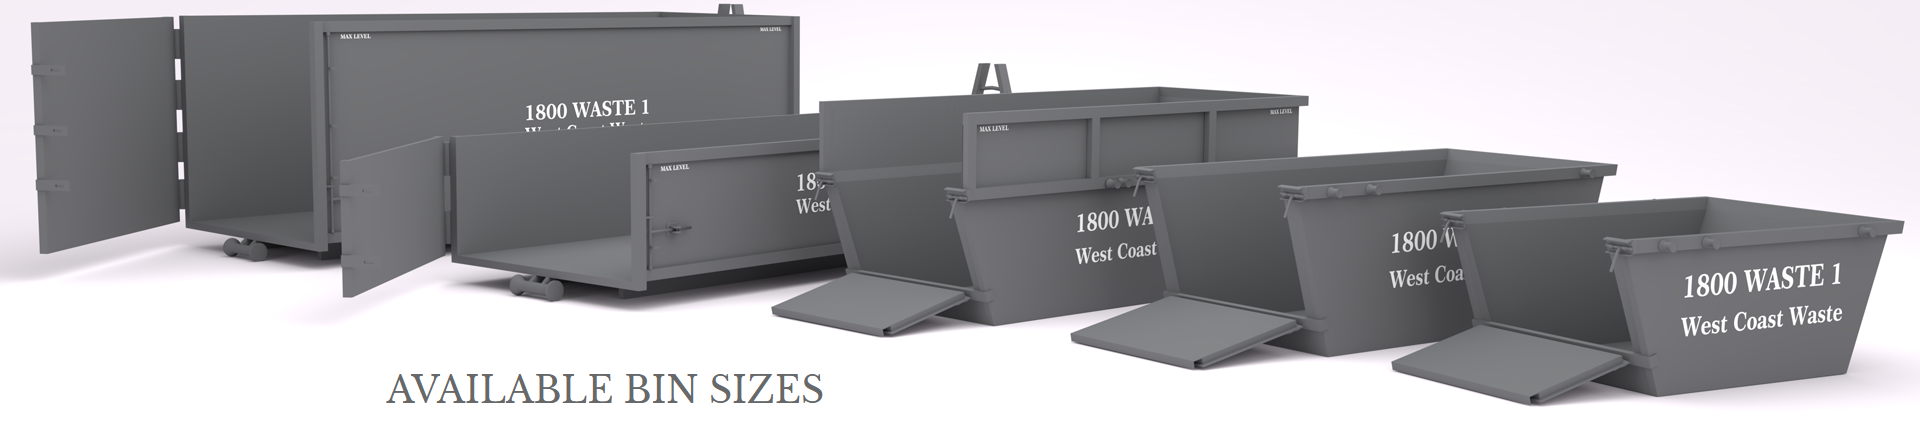 West Coast Waste available bin sizes